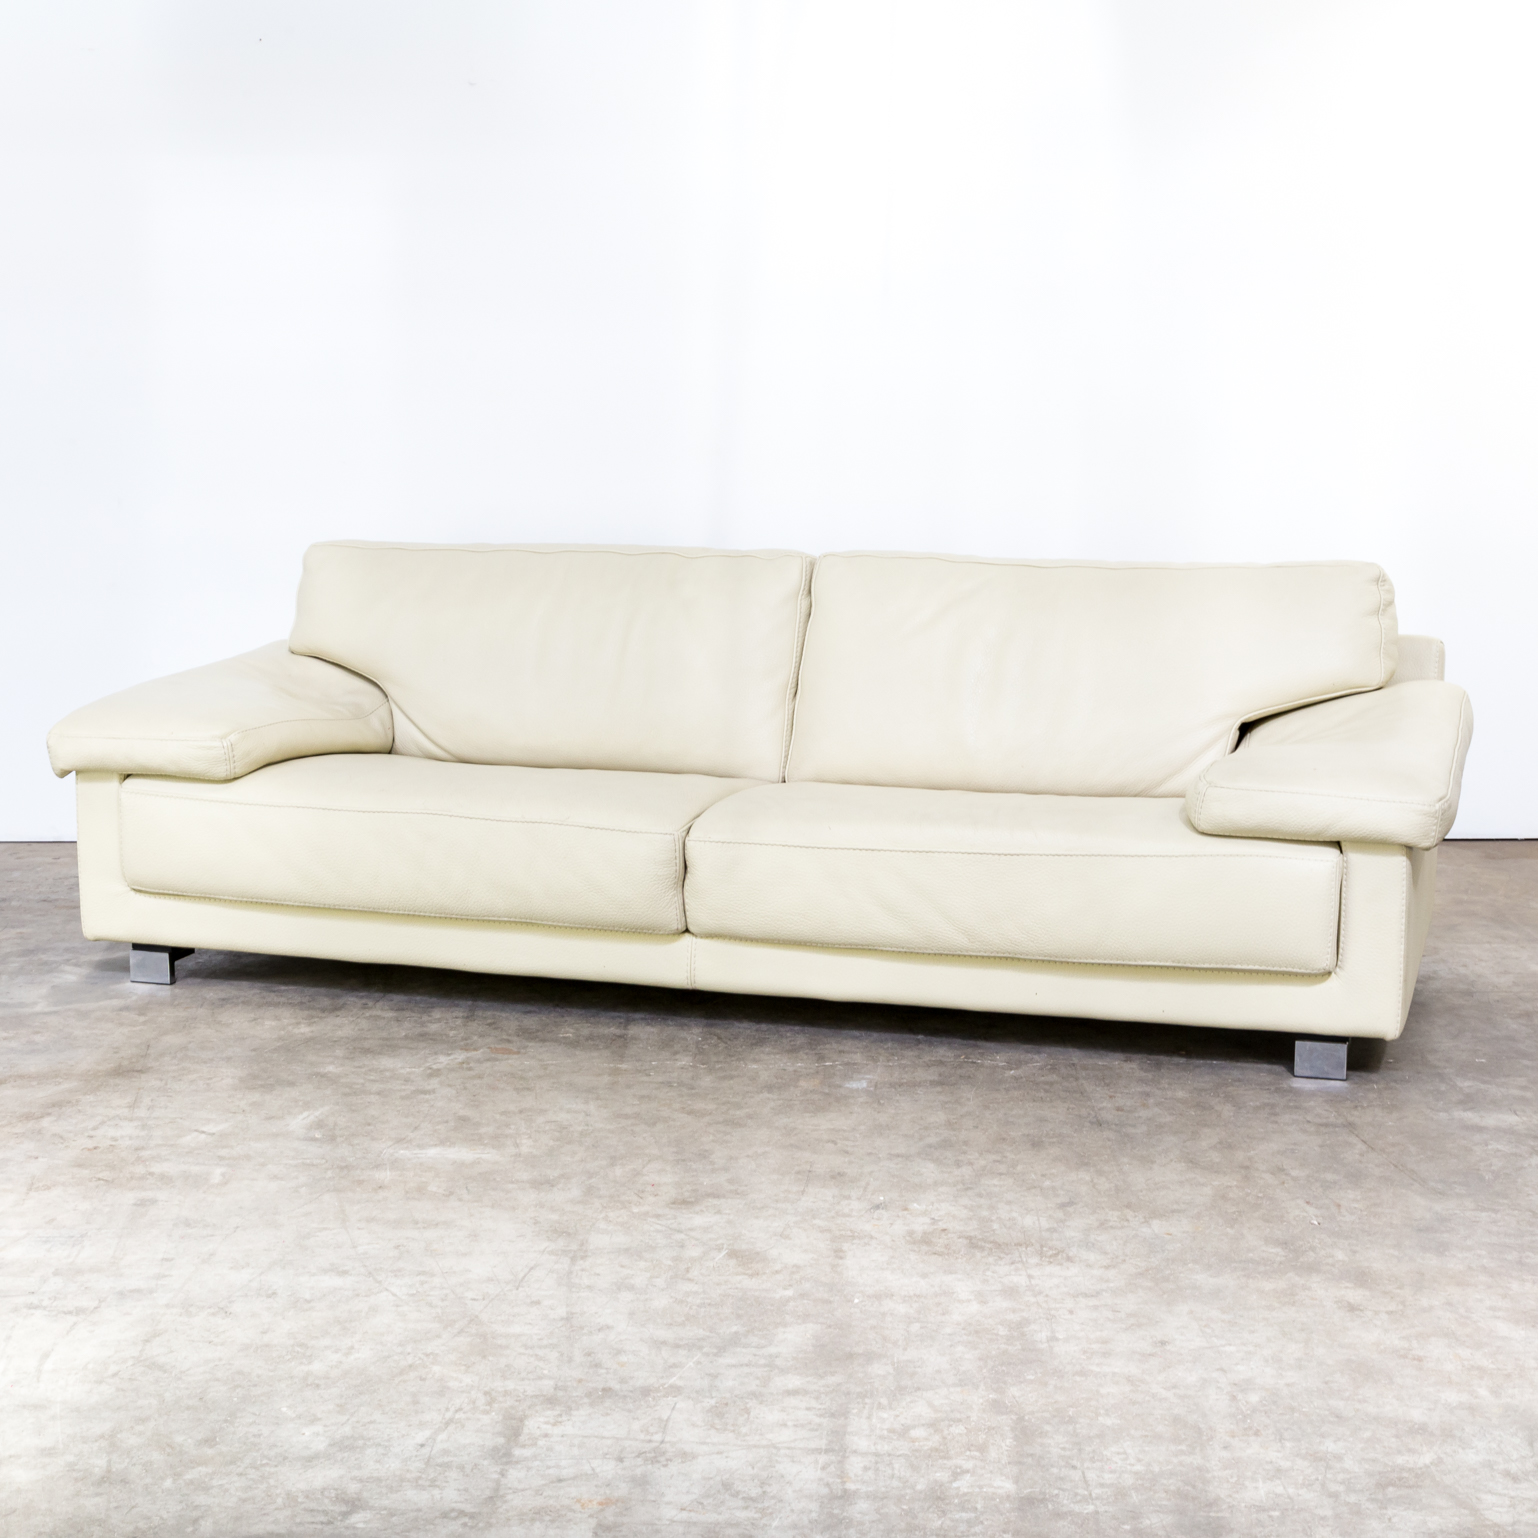 100 Roche Bobois Couch Sofa For Sale